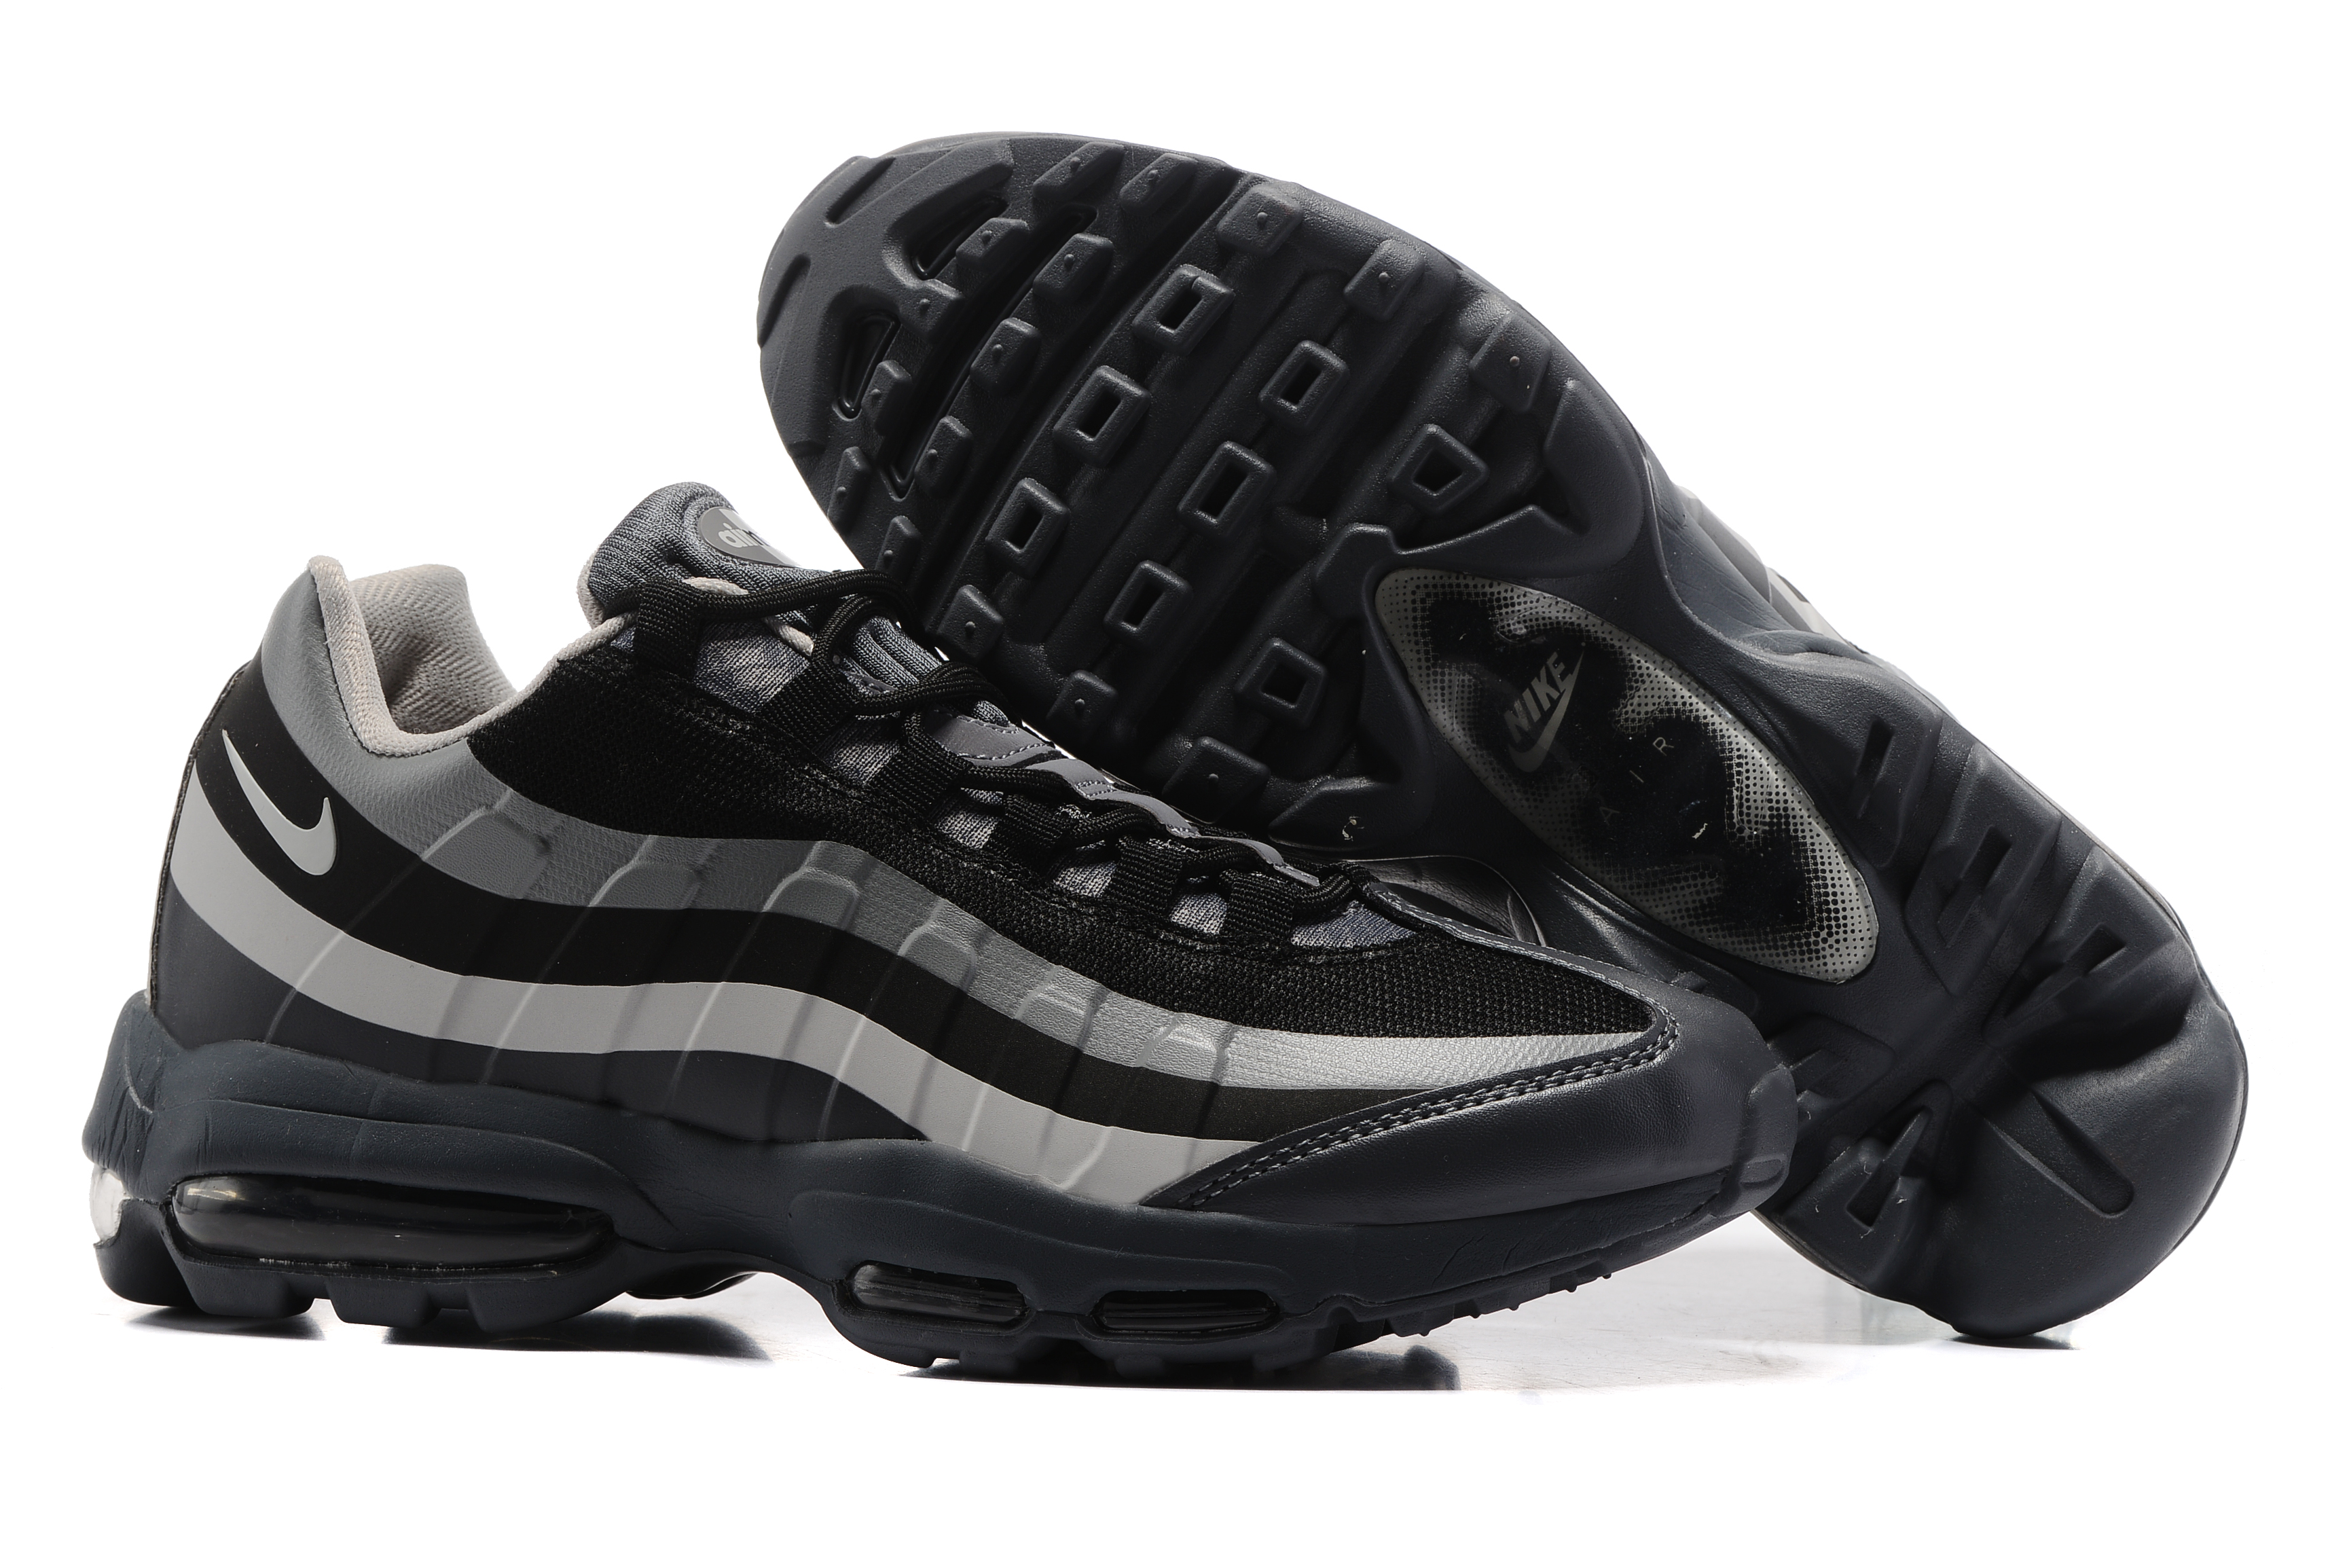 Nike Air Max 95 Black Grey Shoes